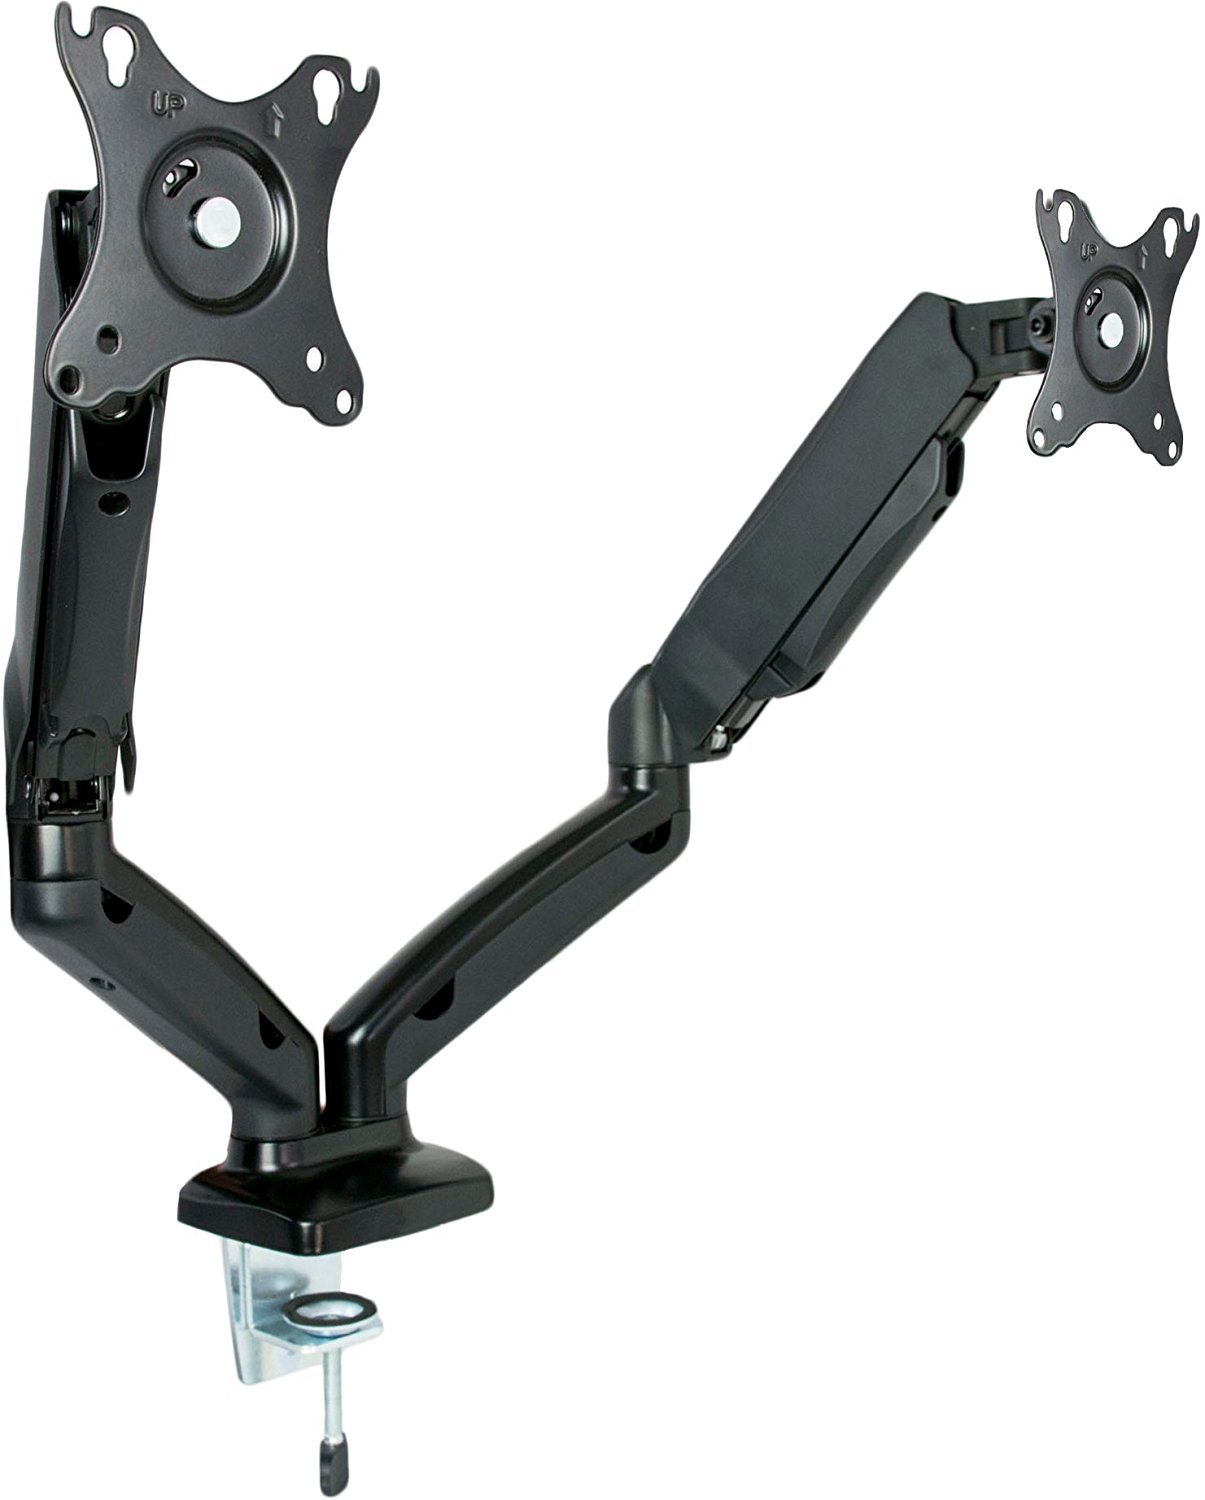 Vivo Dual Monitor Counterbalance Gas Spring Desk Mount